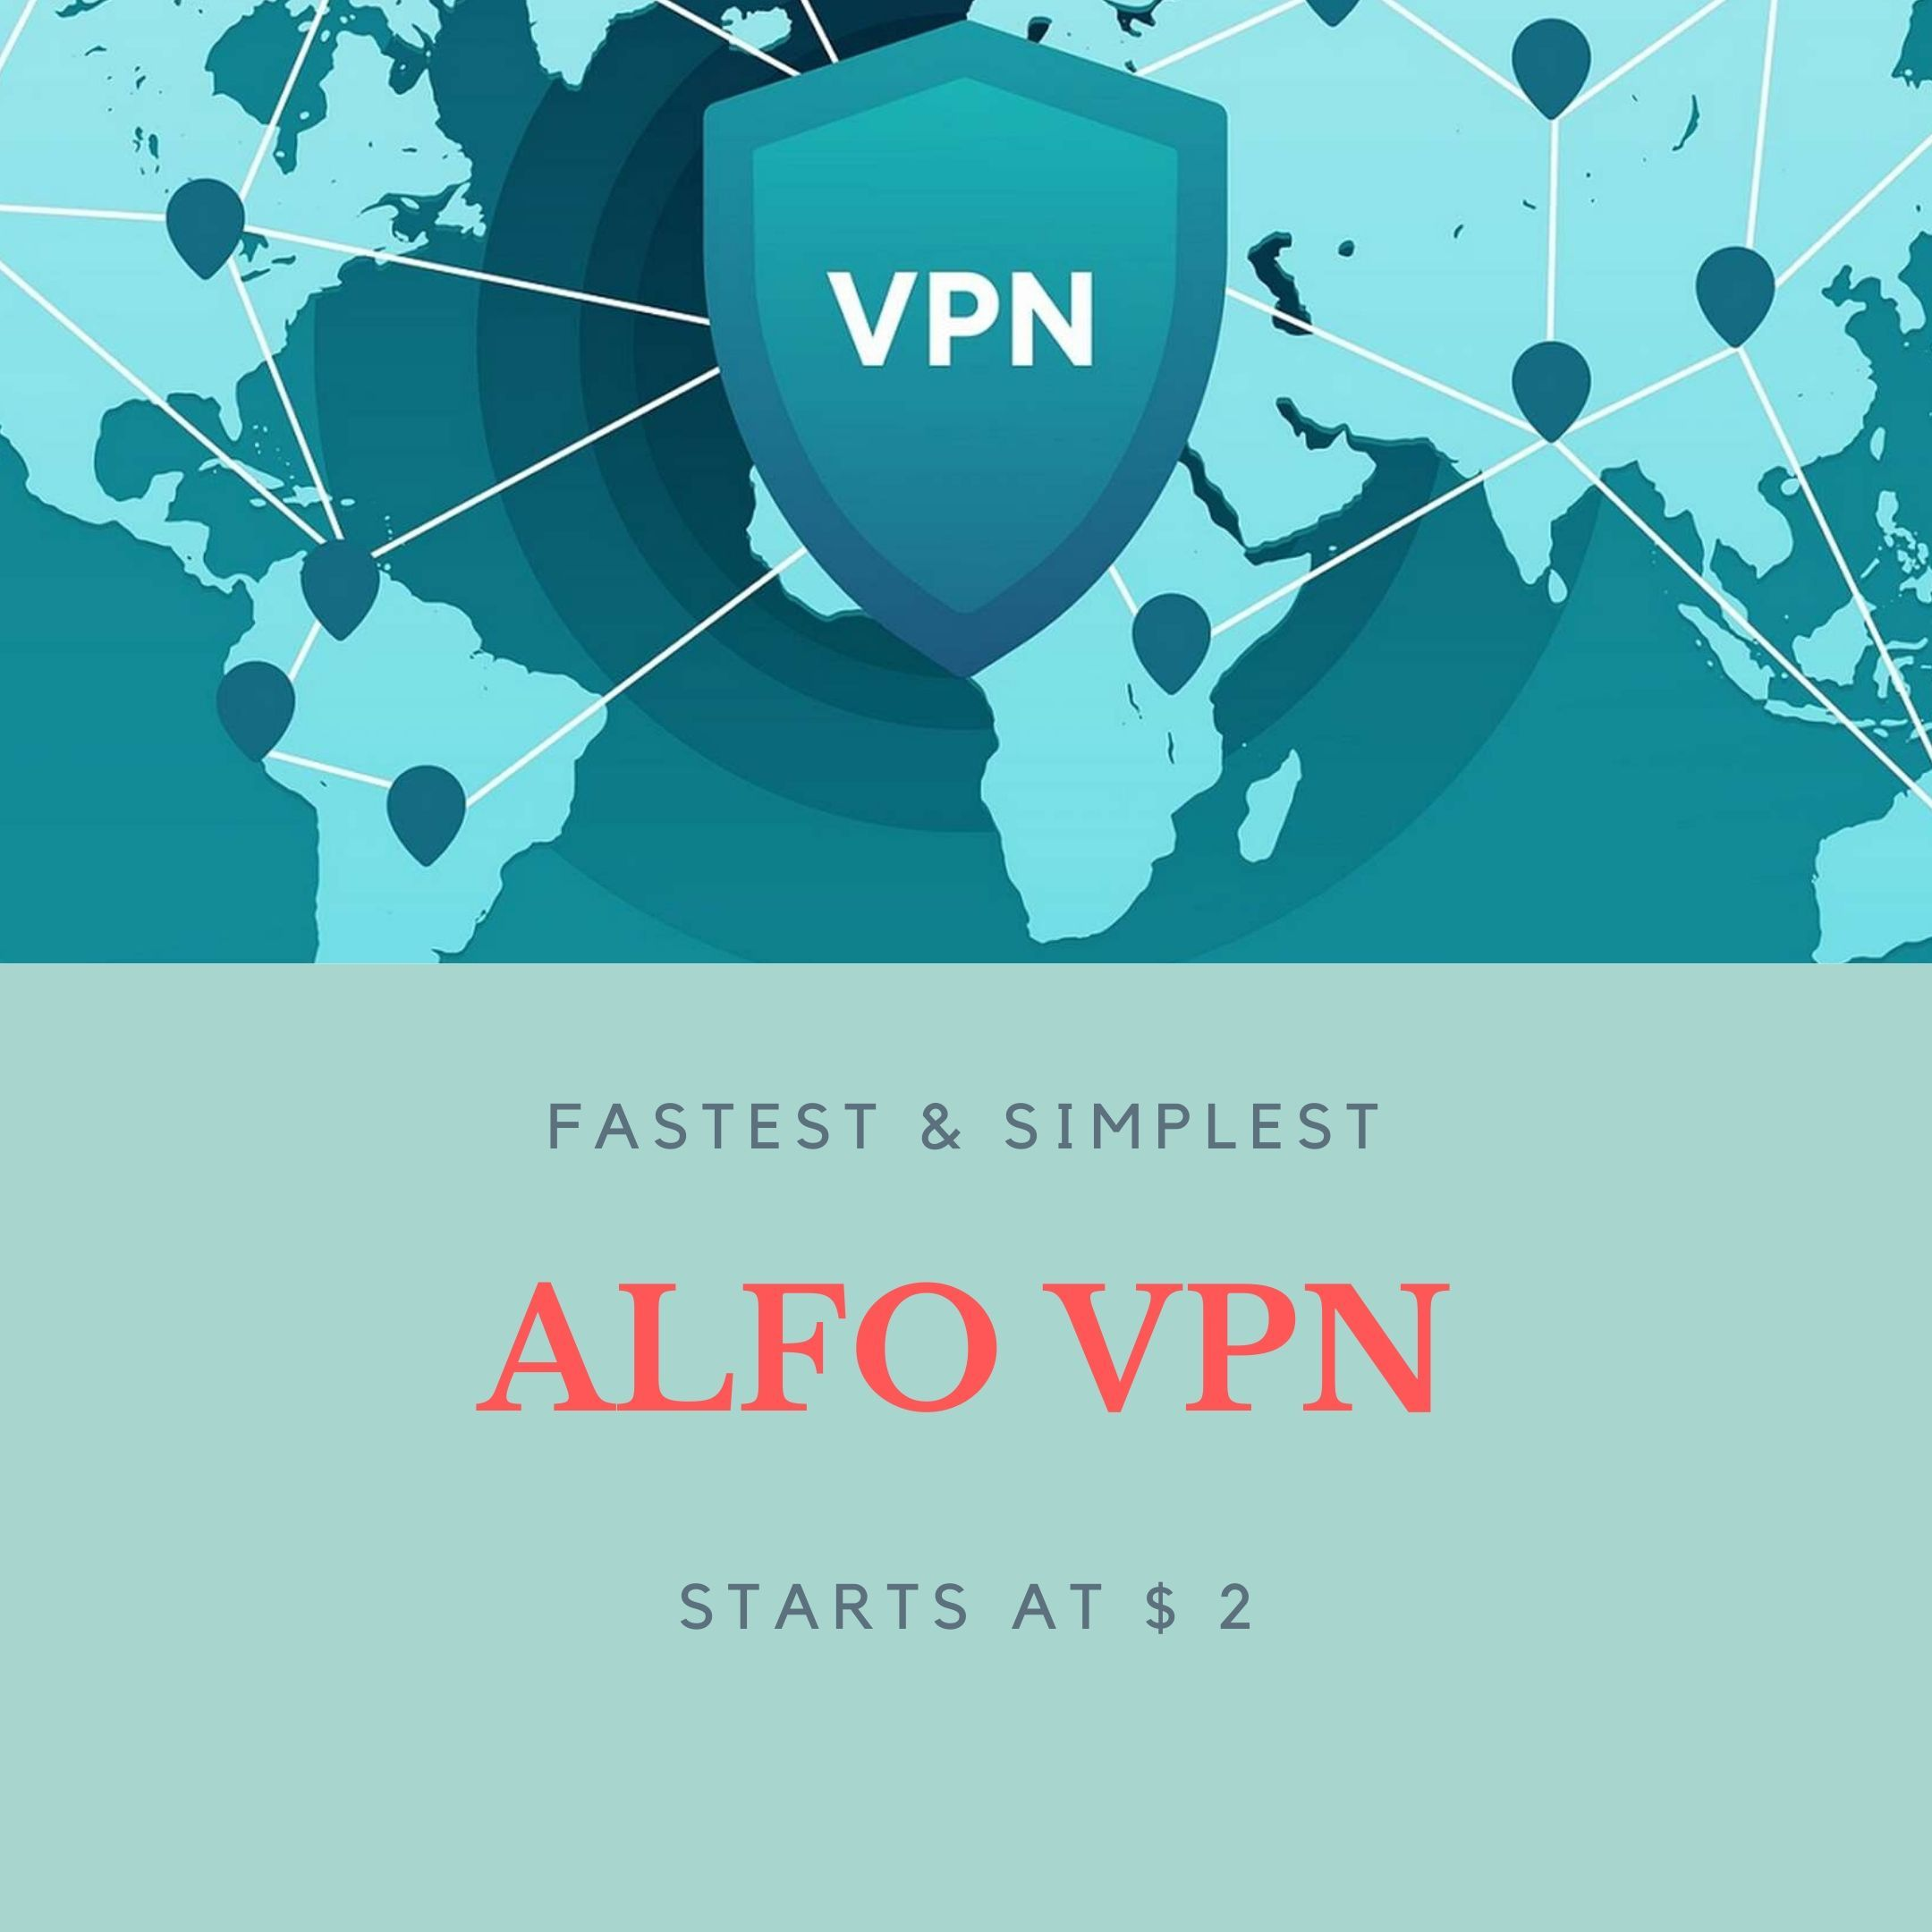 2d388cfbe5706470c0536eff26cfd6d3 - Free Vpn To Use With Tor